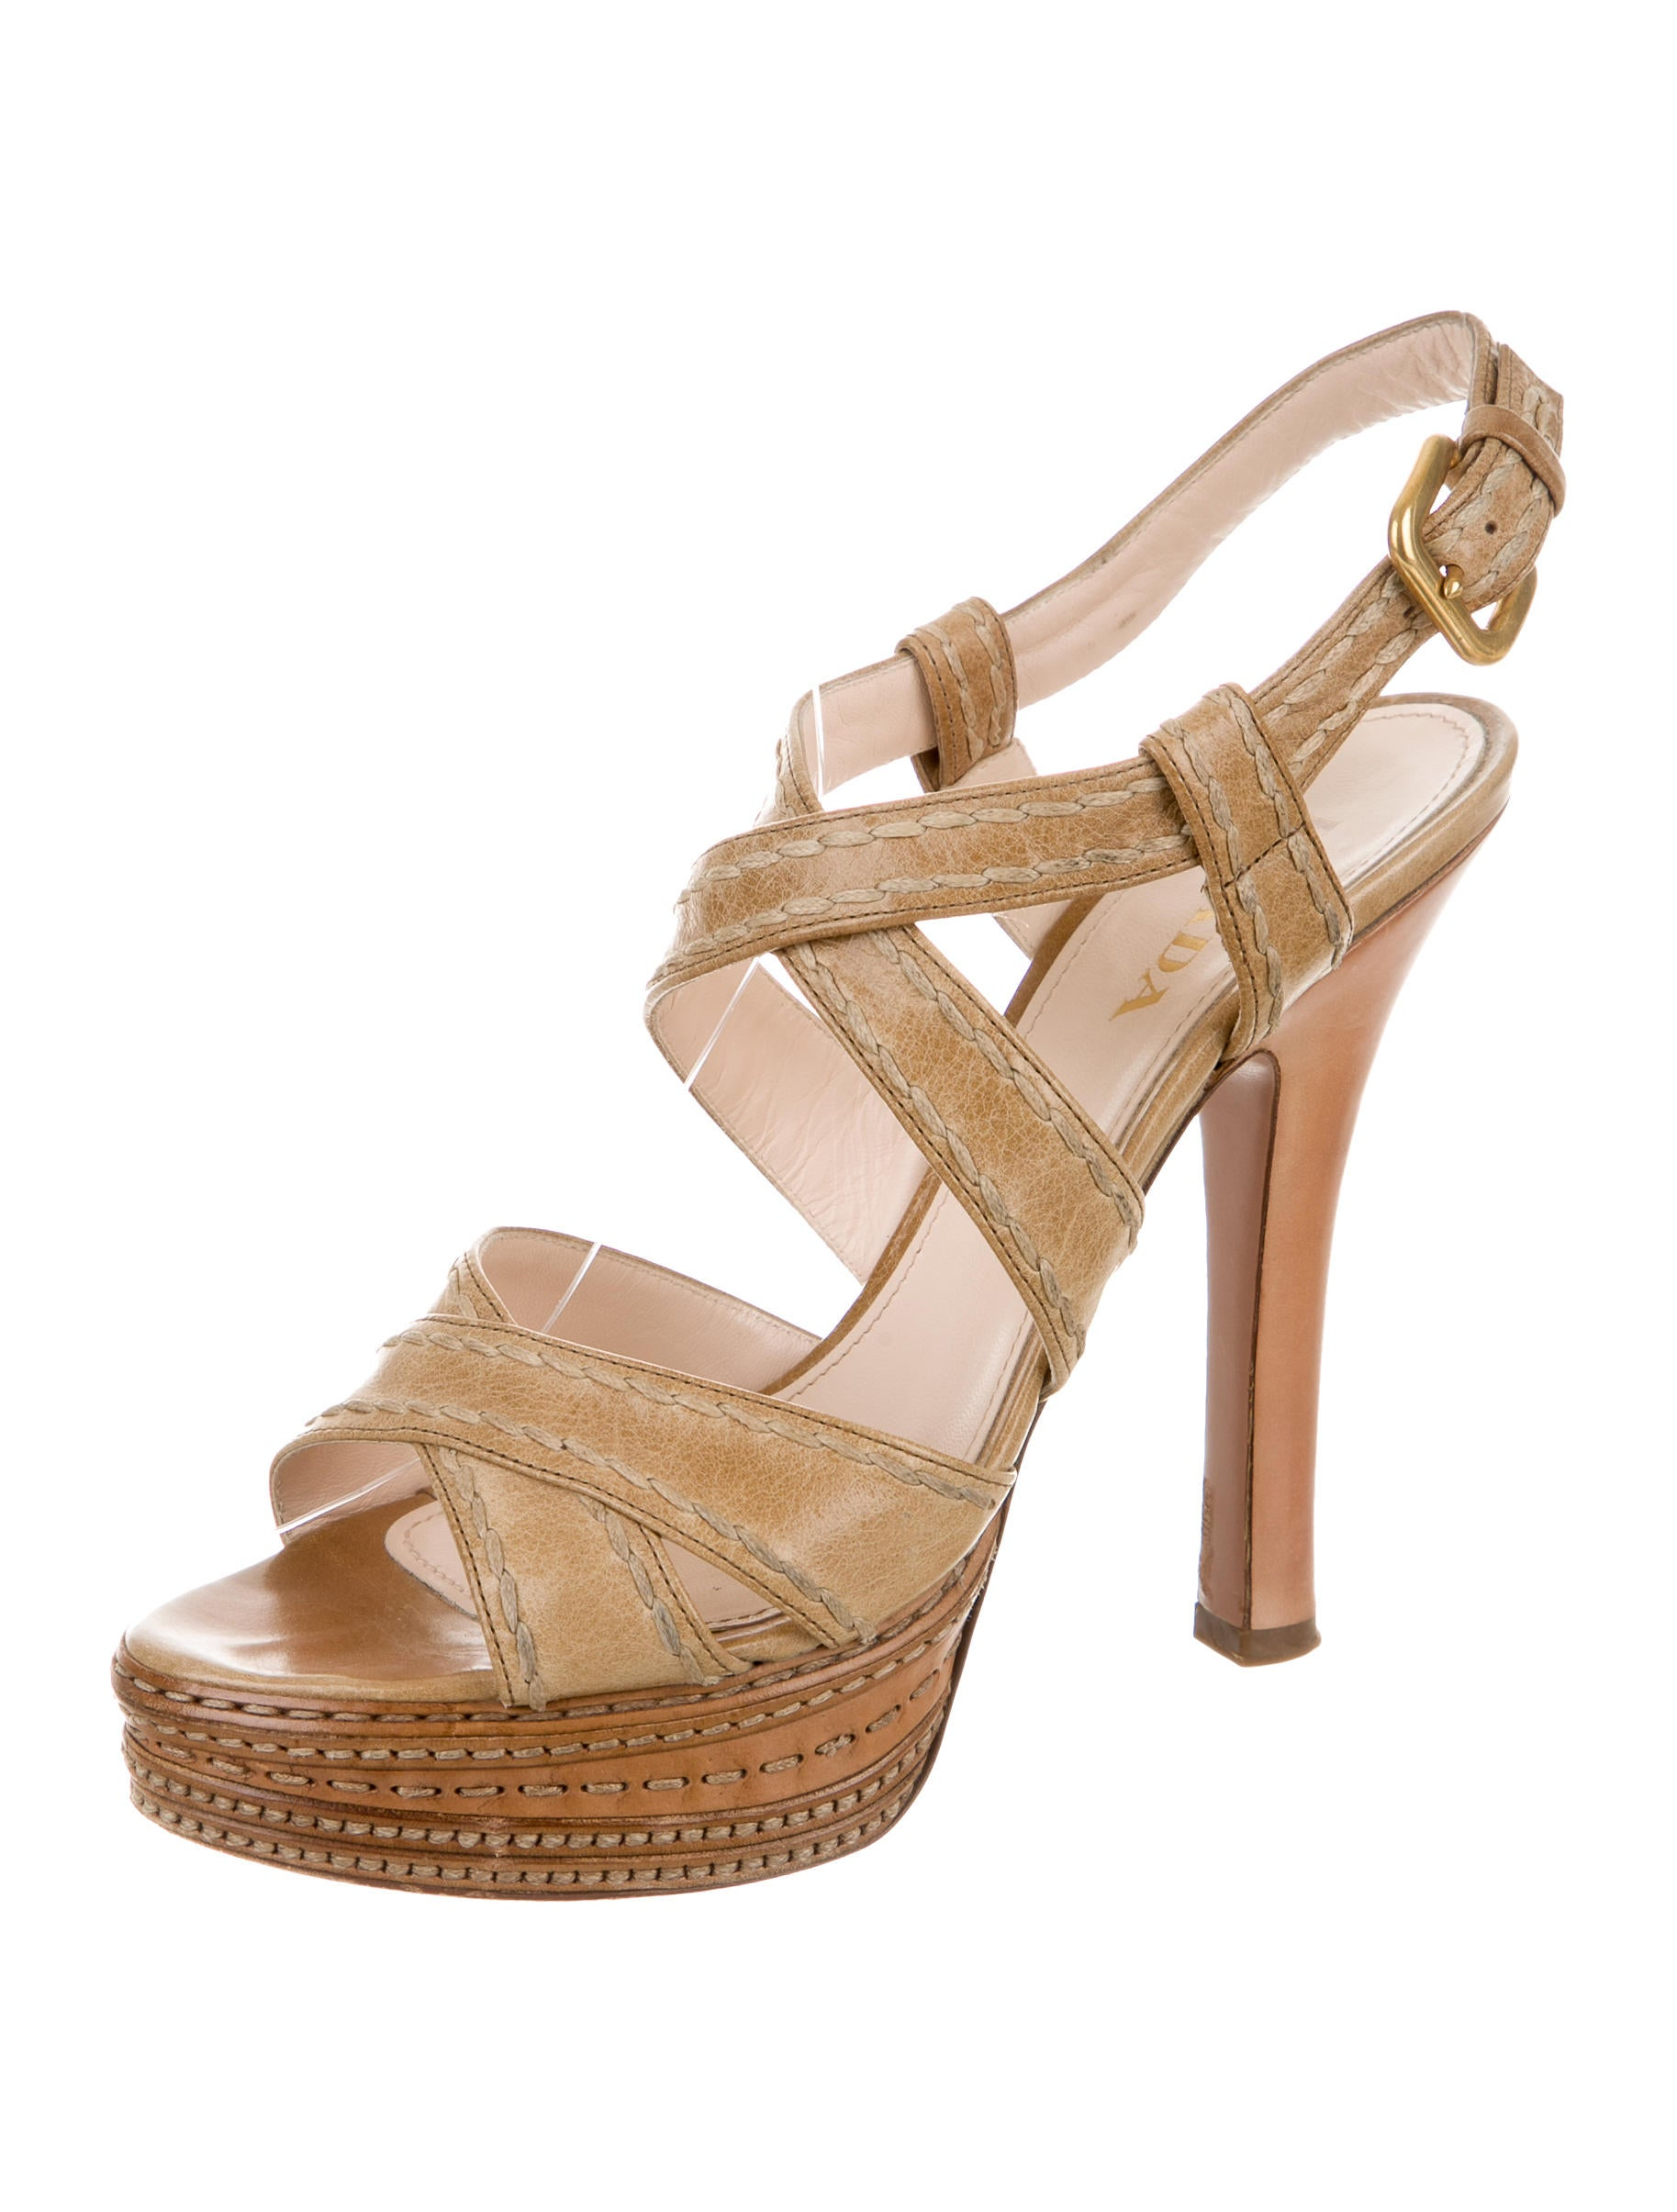 prada platform leather sandals shoes pra141049 the